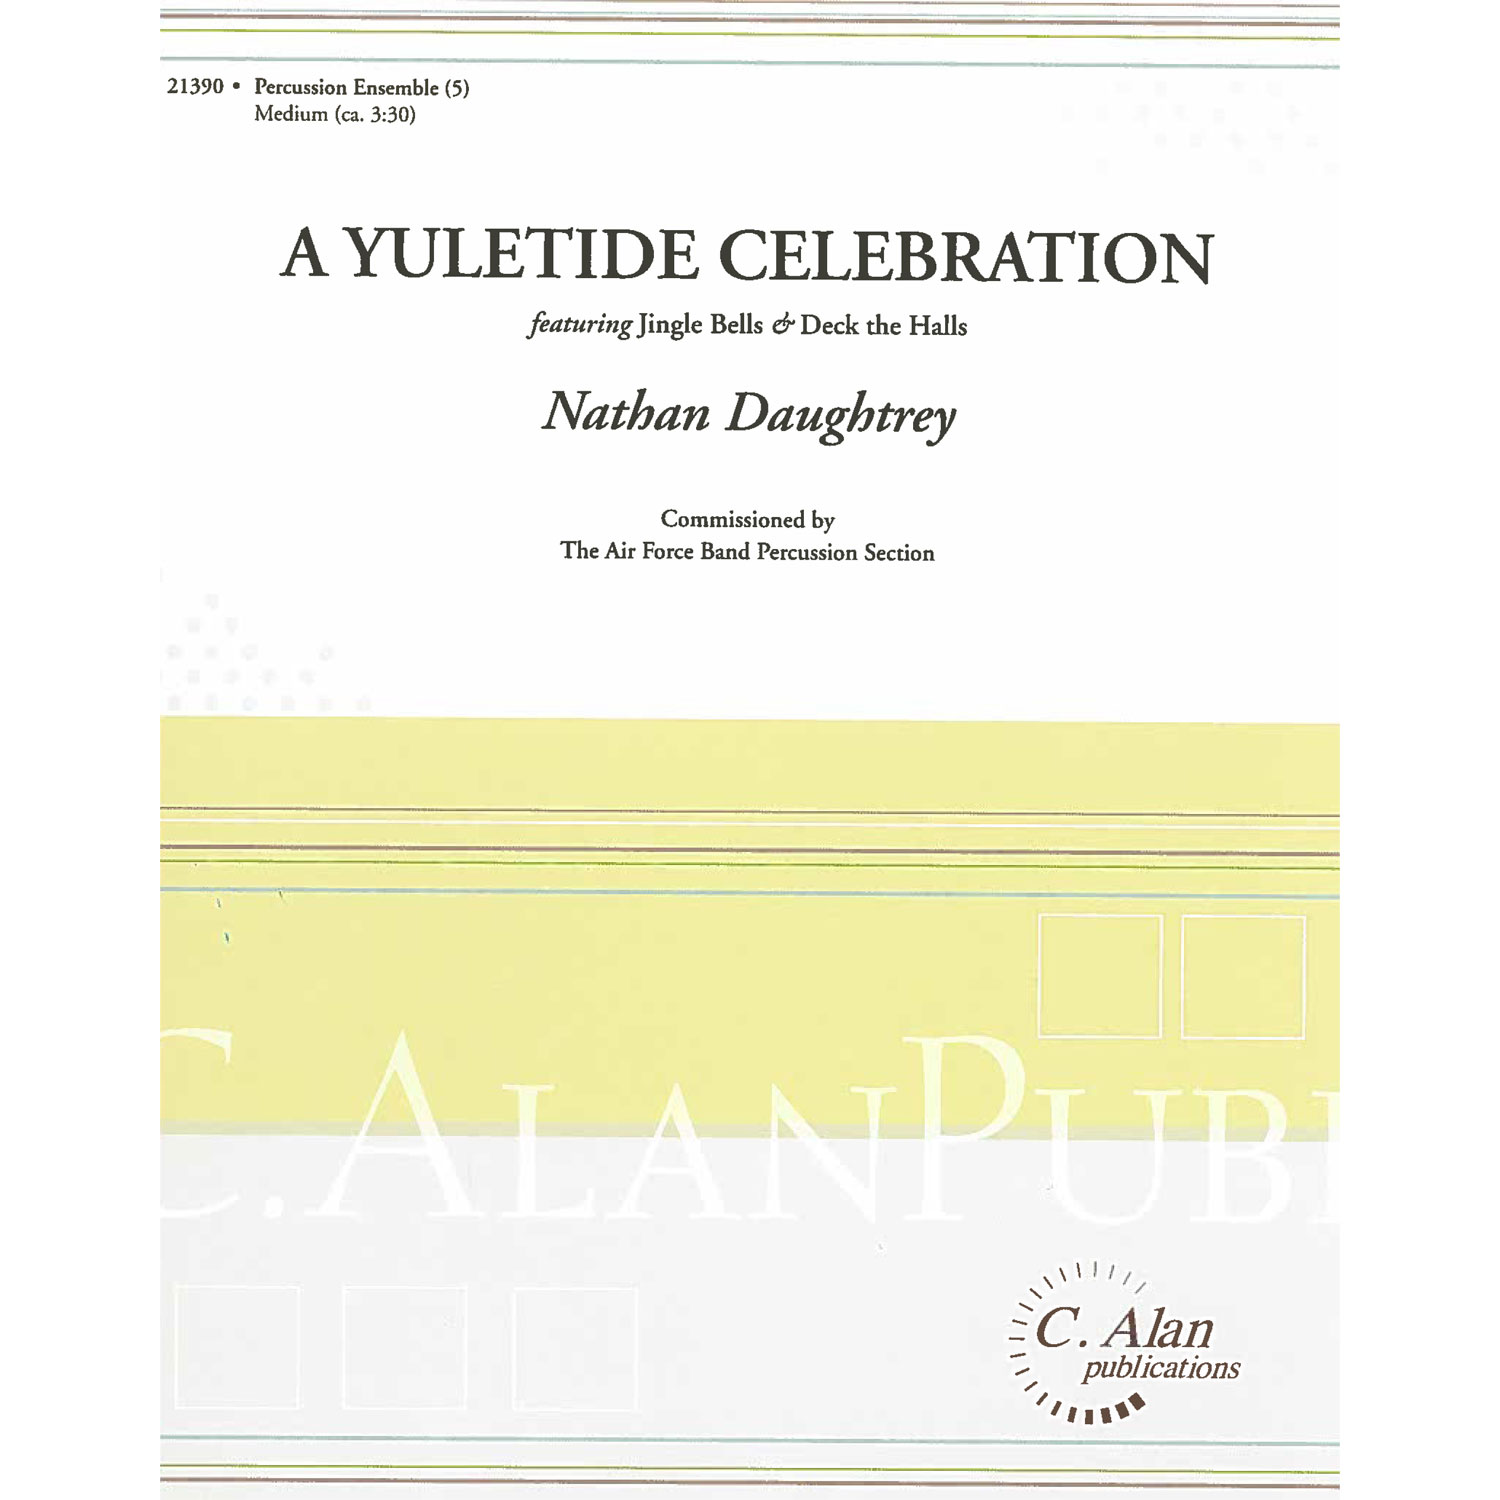 A Yuletide Celebration arr. Nathan Daughtrey